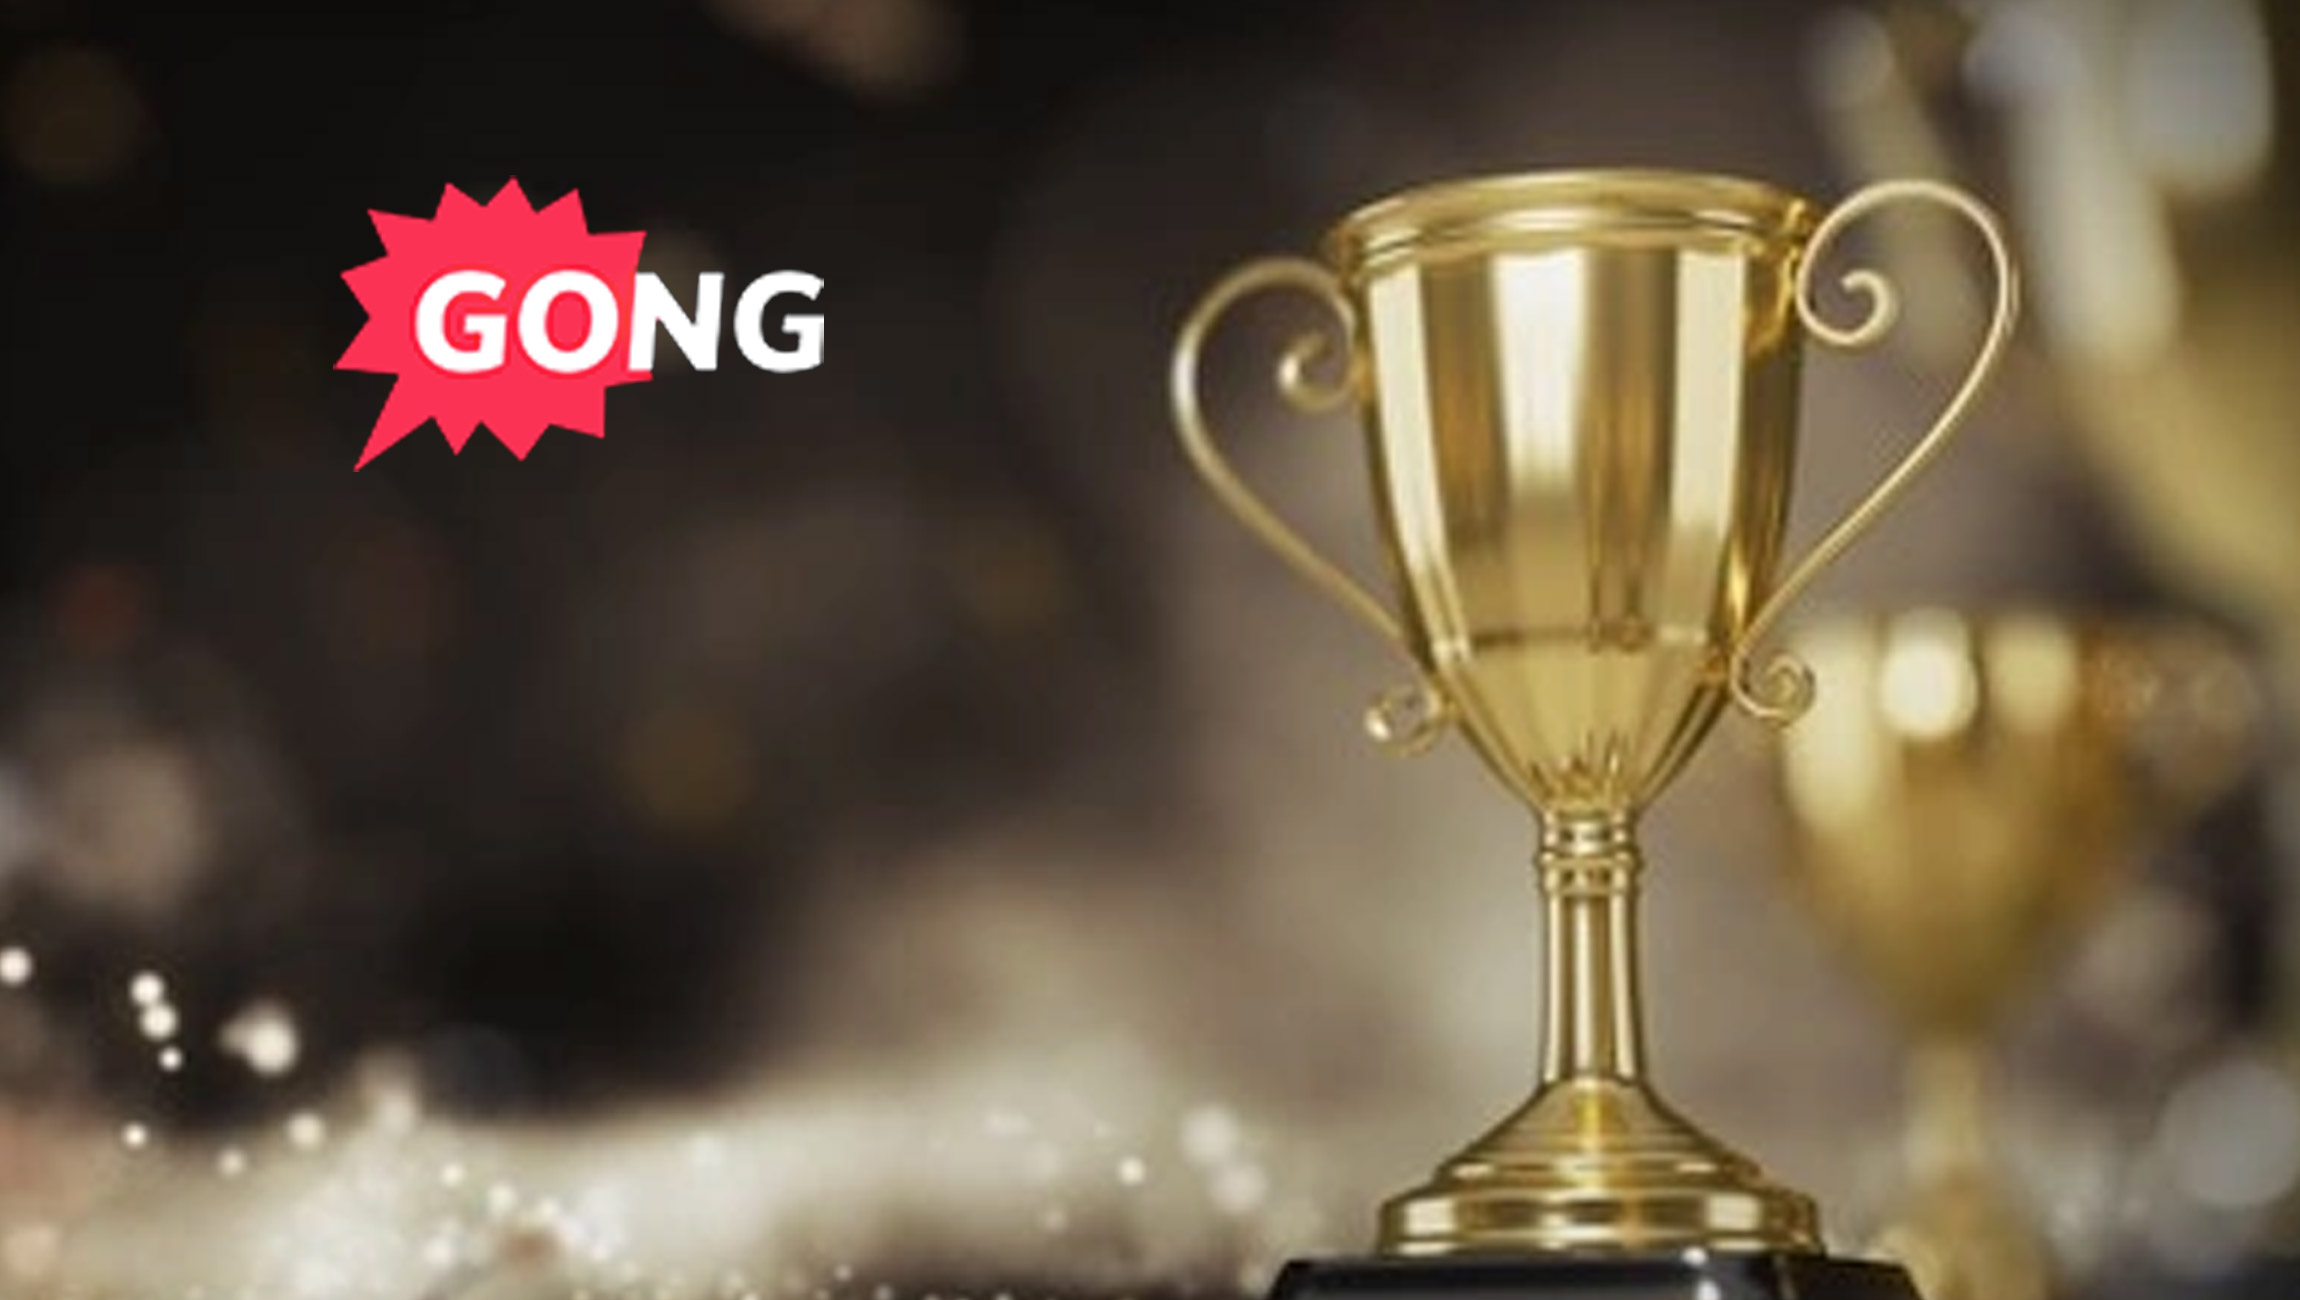 Gong Earns A 2021 Top Rated Award From TrustRadius